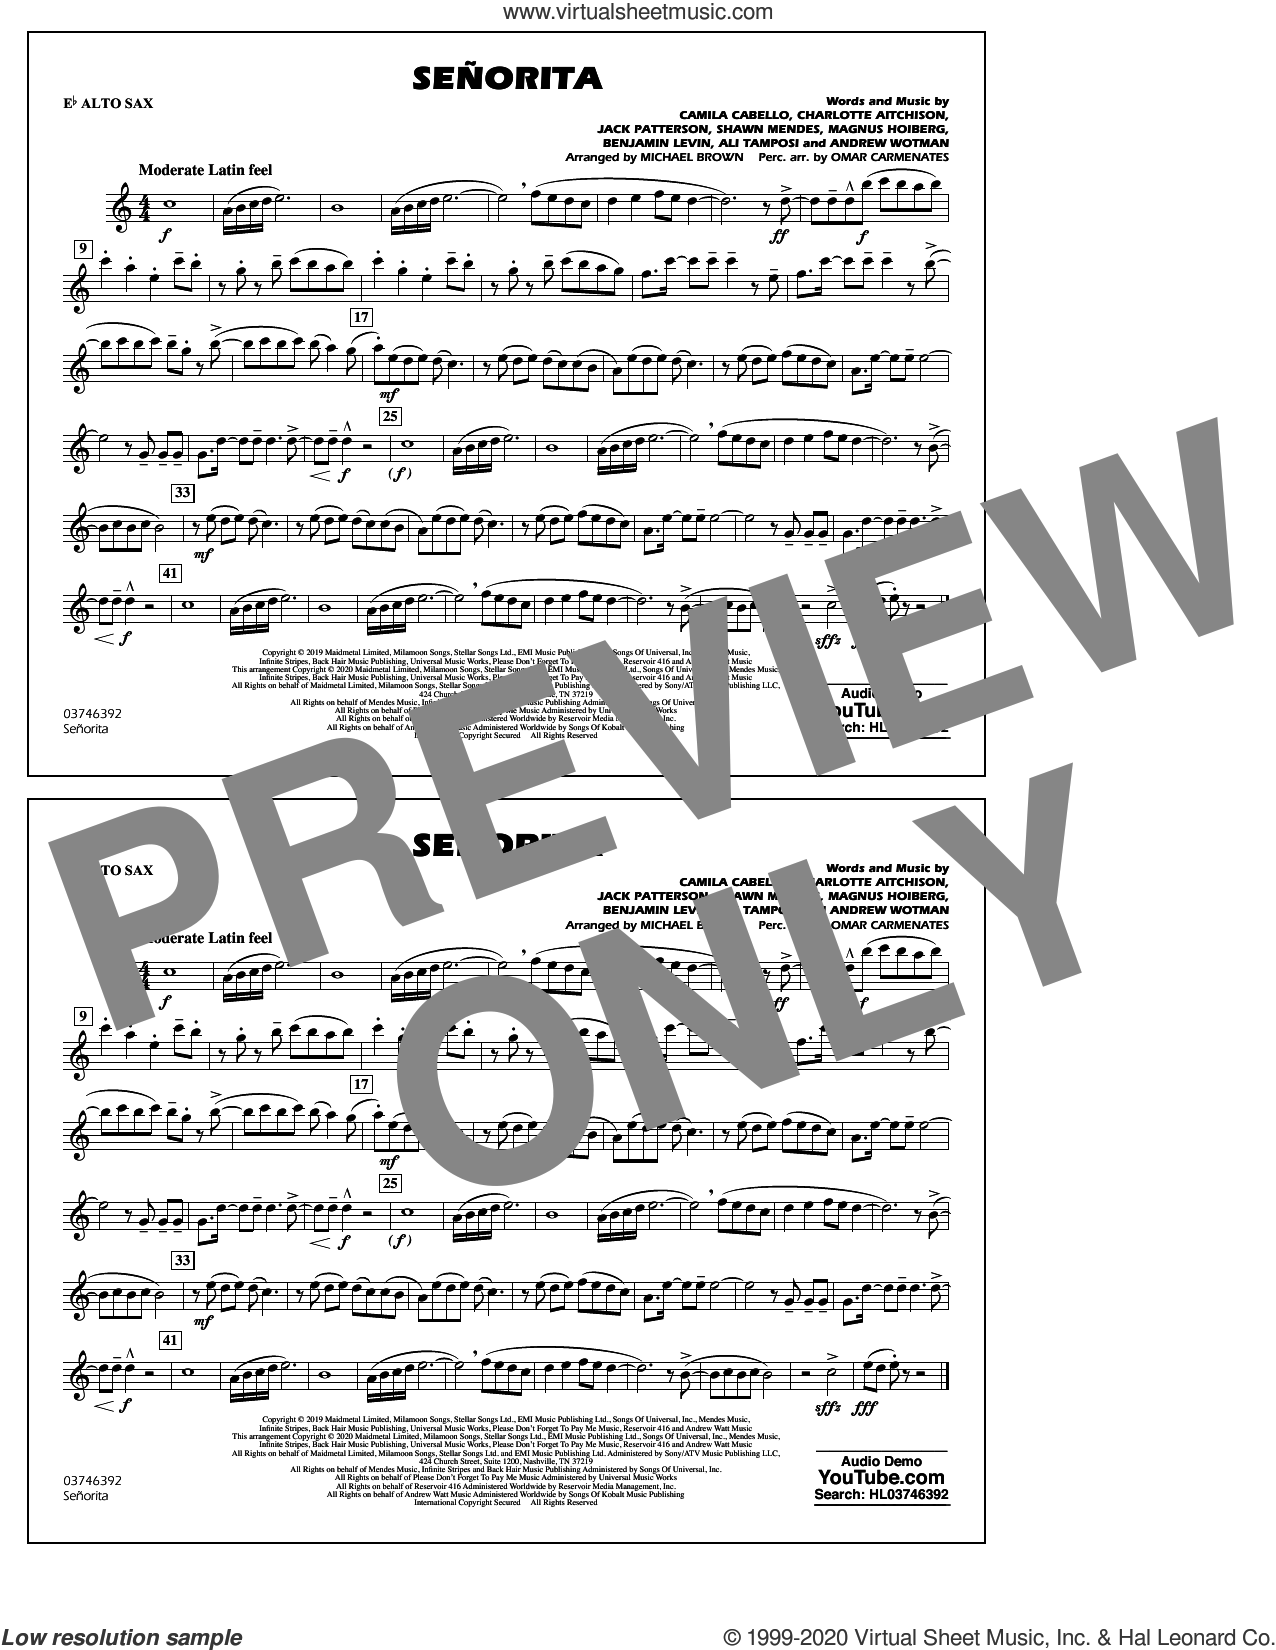 Señorita (arr. Carmenates and Brown) sheet music for marching band (Eb alto sax) by Shawn Mendes & Camila Cabello, Michael Brown, Omar Carmenates, Ali Tamposi, Andrew Wotman, Benjamin Levin, Camila Cabello, Charlotte Aitchison, Jack Patterson, Magnus Hoiberg and Shawn Mendes, intermediate skill level